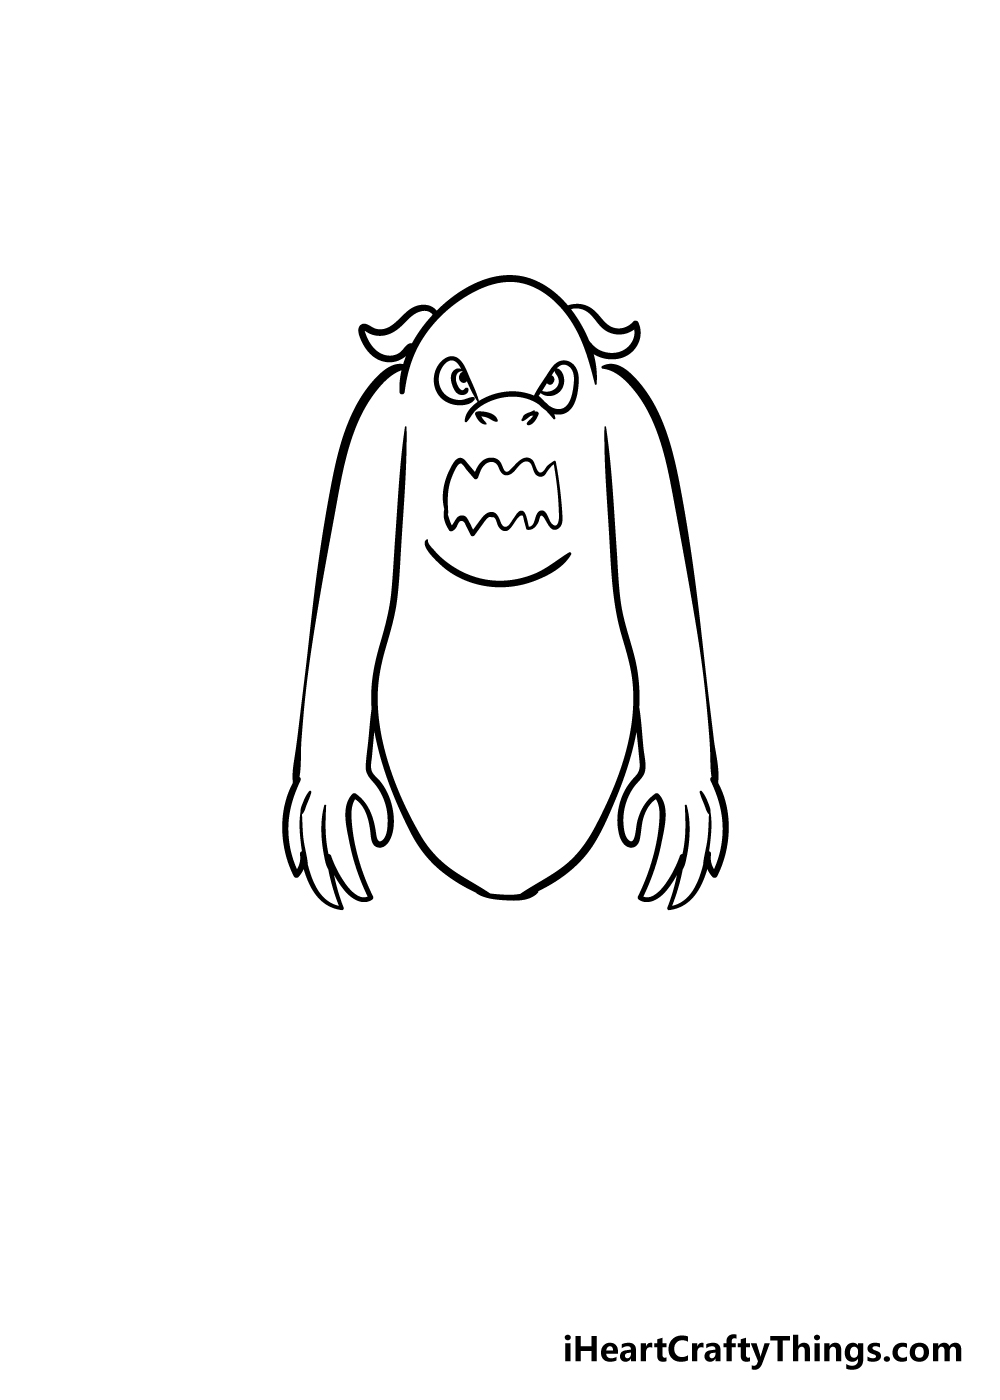 monster drawing step 4